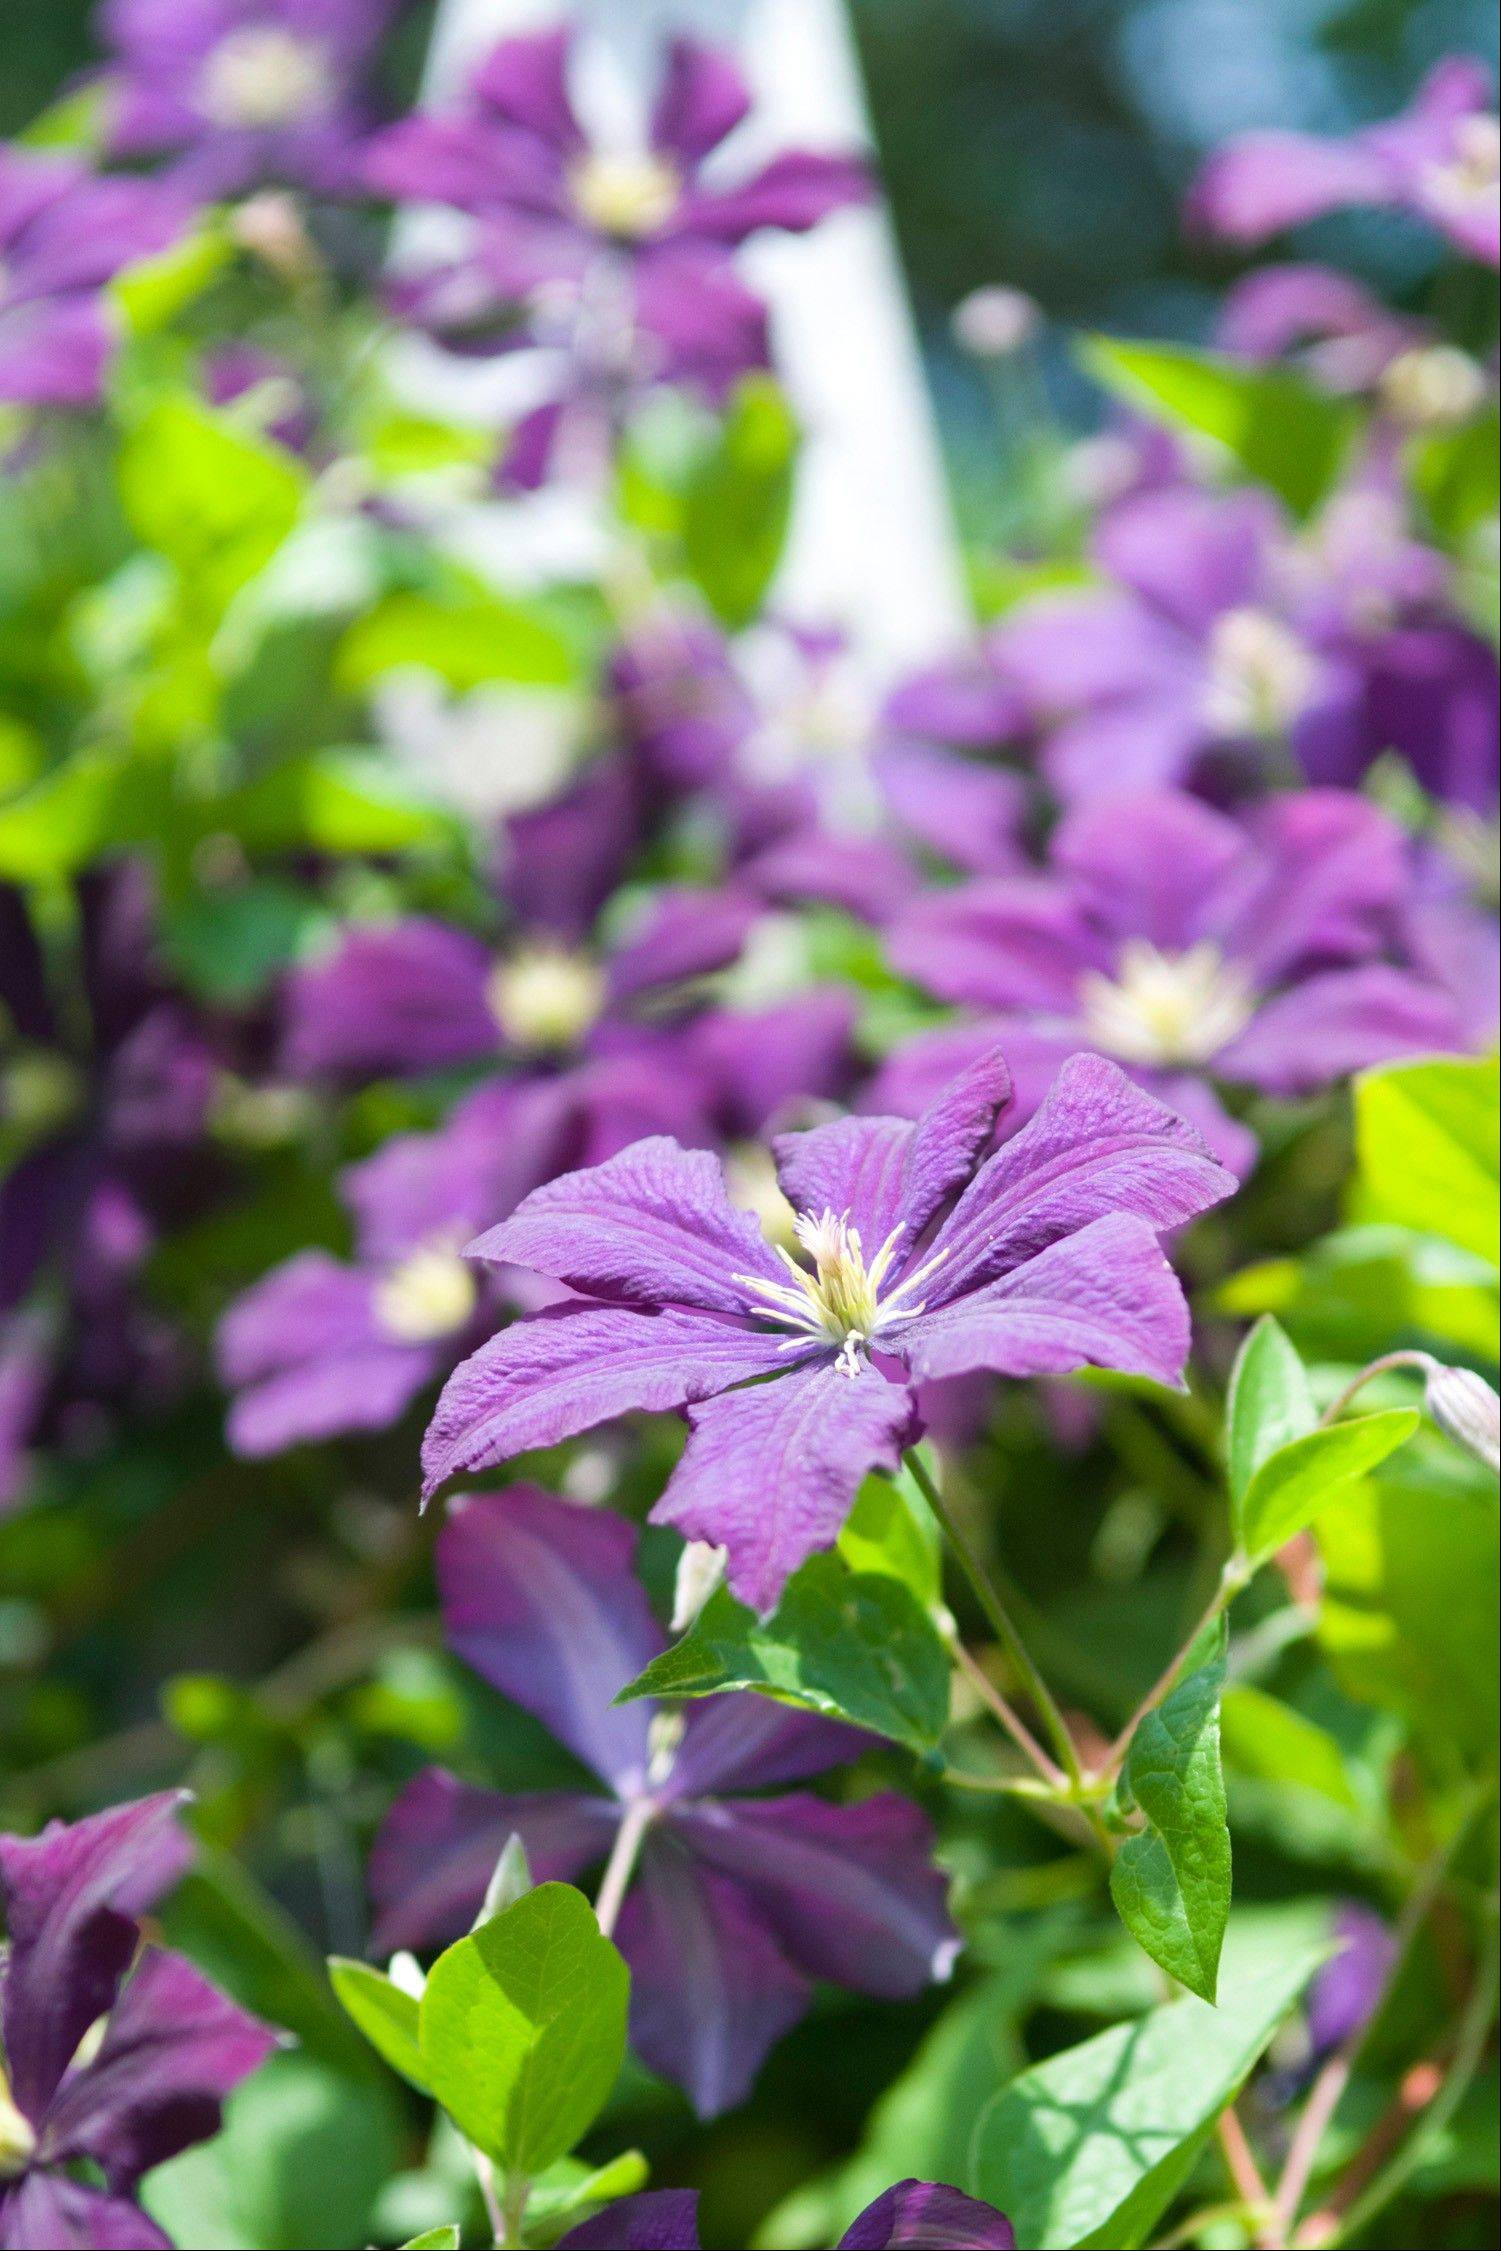 Vines such as clematis should be trained to their supports on a regular basis.